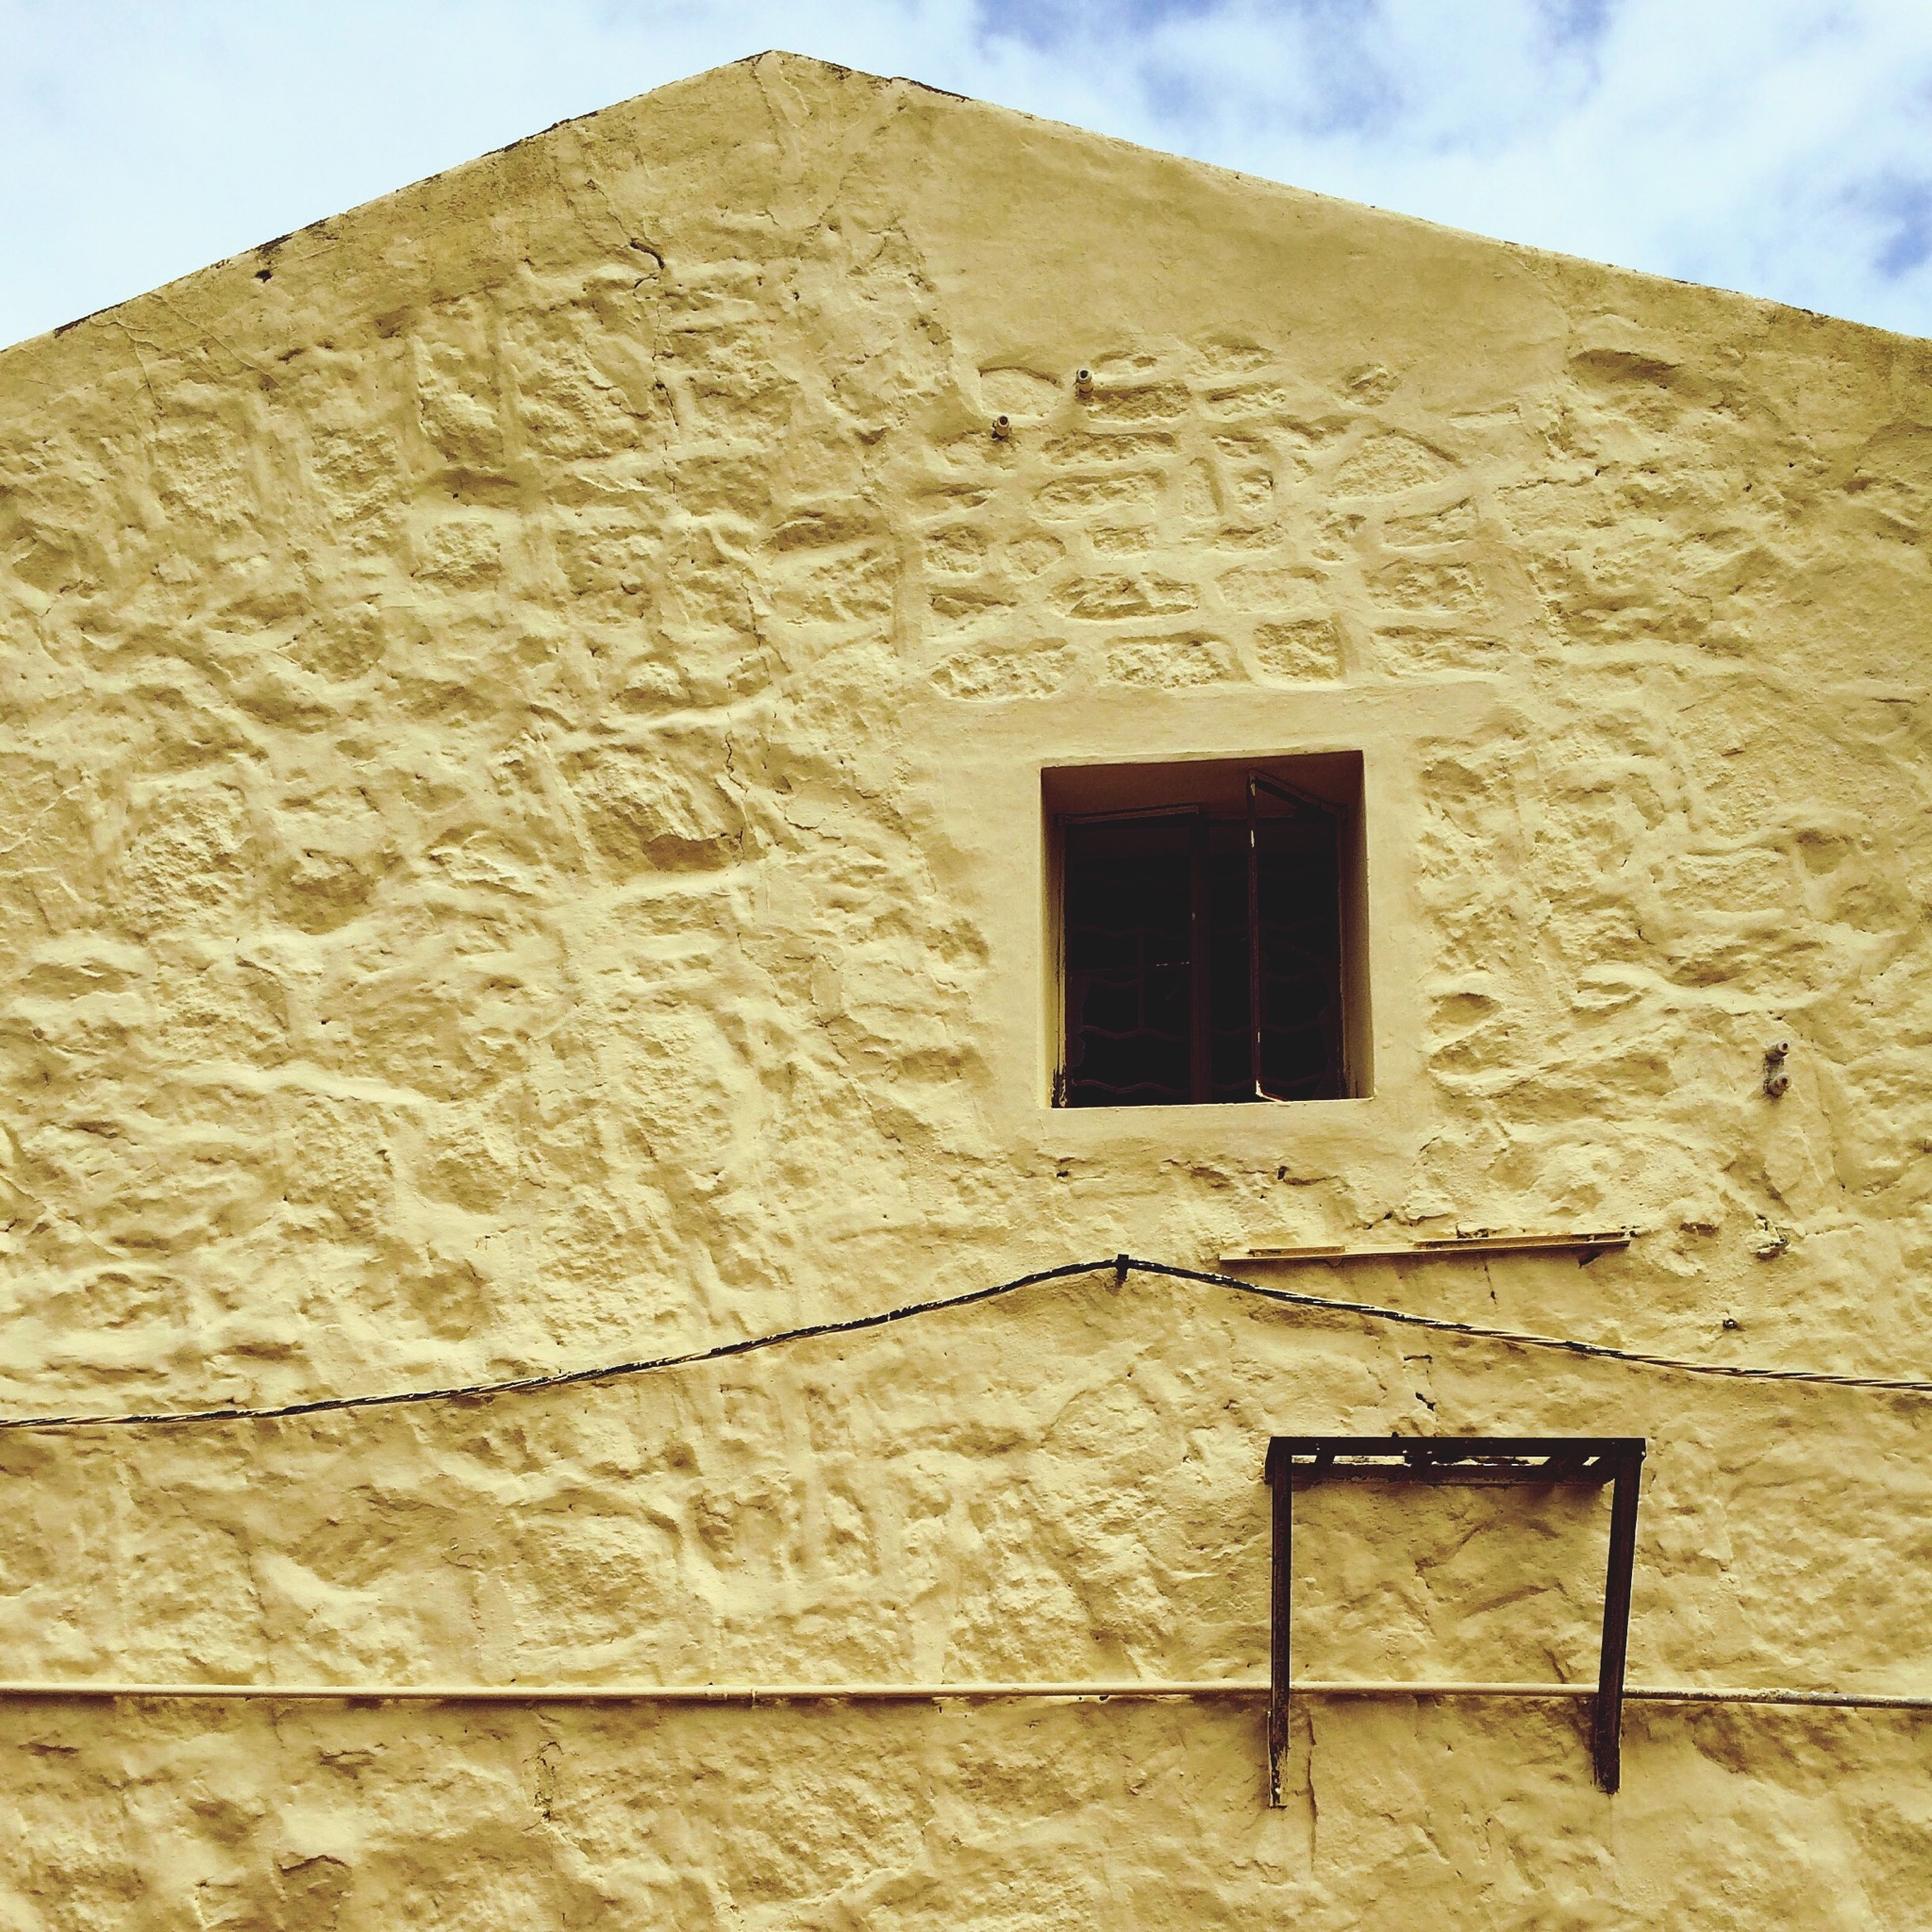 architecture, building exterior, built structure, window, sky, low angle view, house, wall - building feature, brick wall, old, day, stone wall, wall, no people, sunlight, outdoors, history, wood - material, facade, door